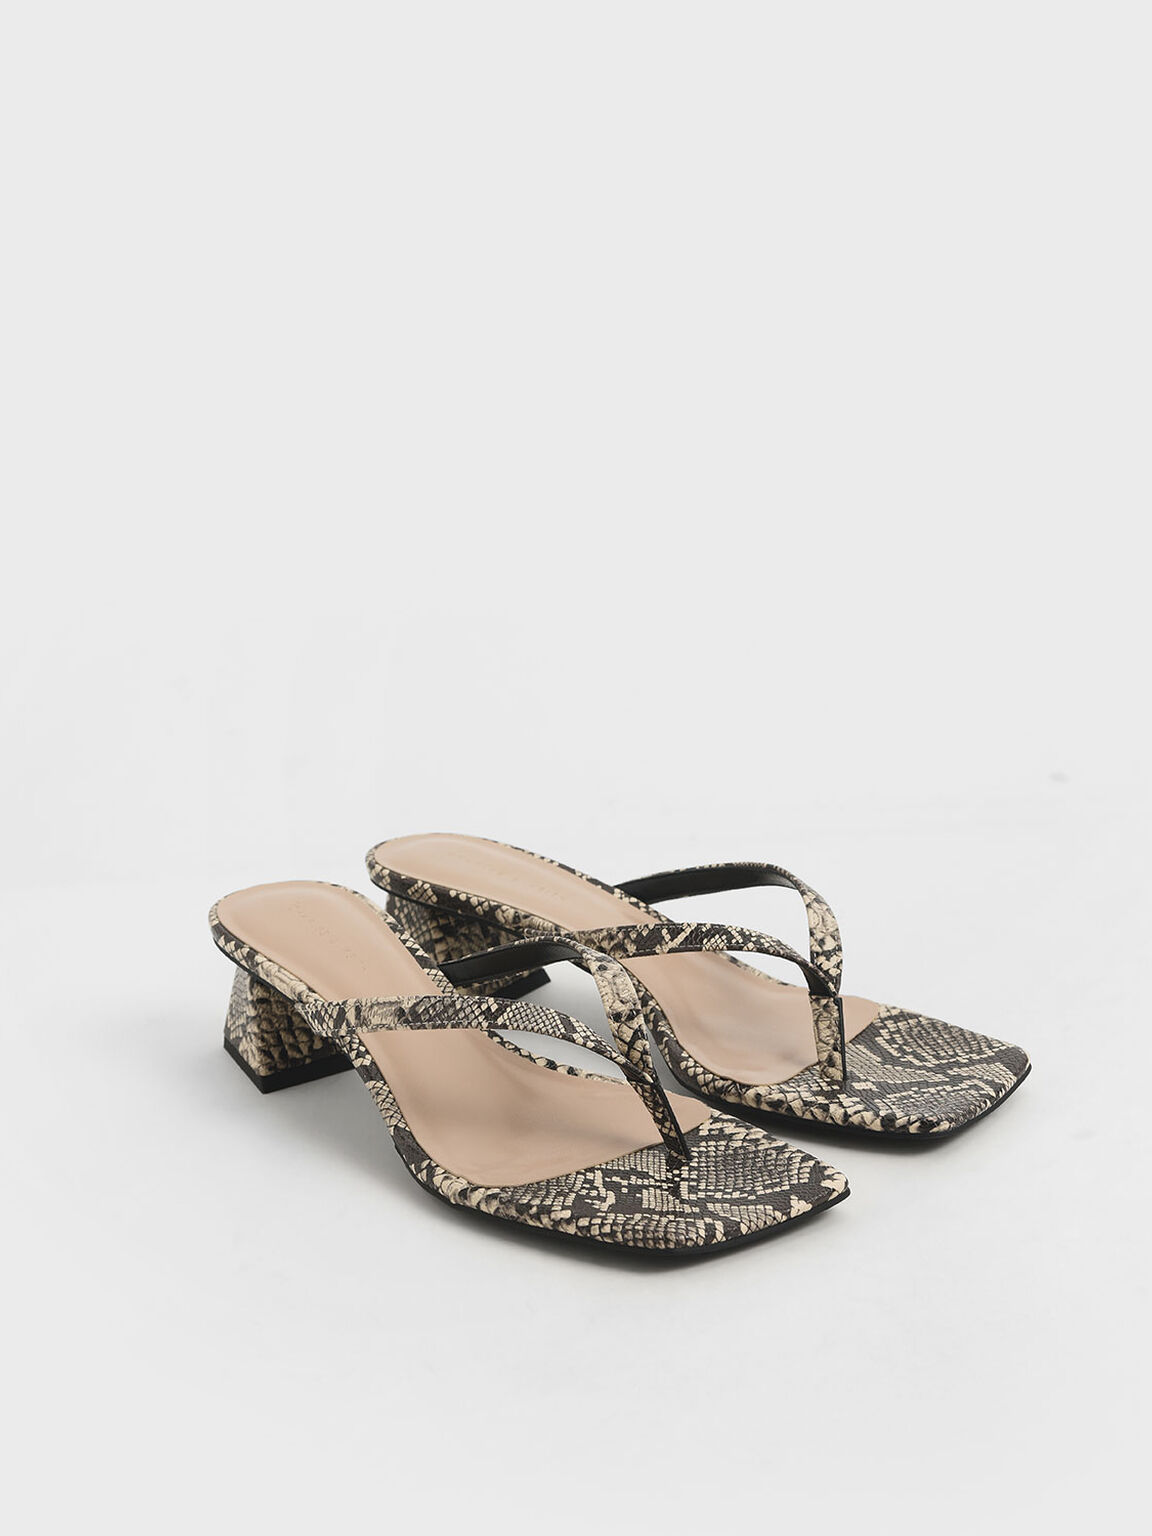 Snake Print Thong Heeled Sandals, Multi, hi-res